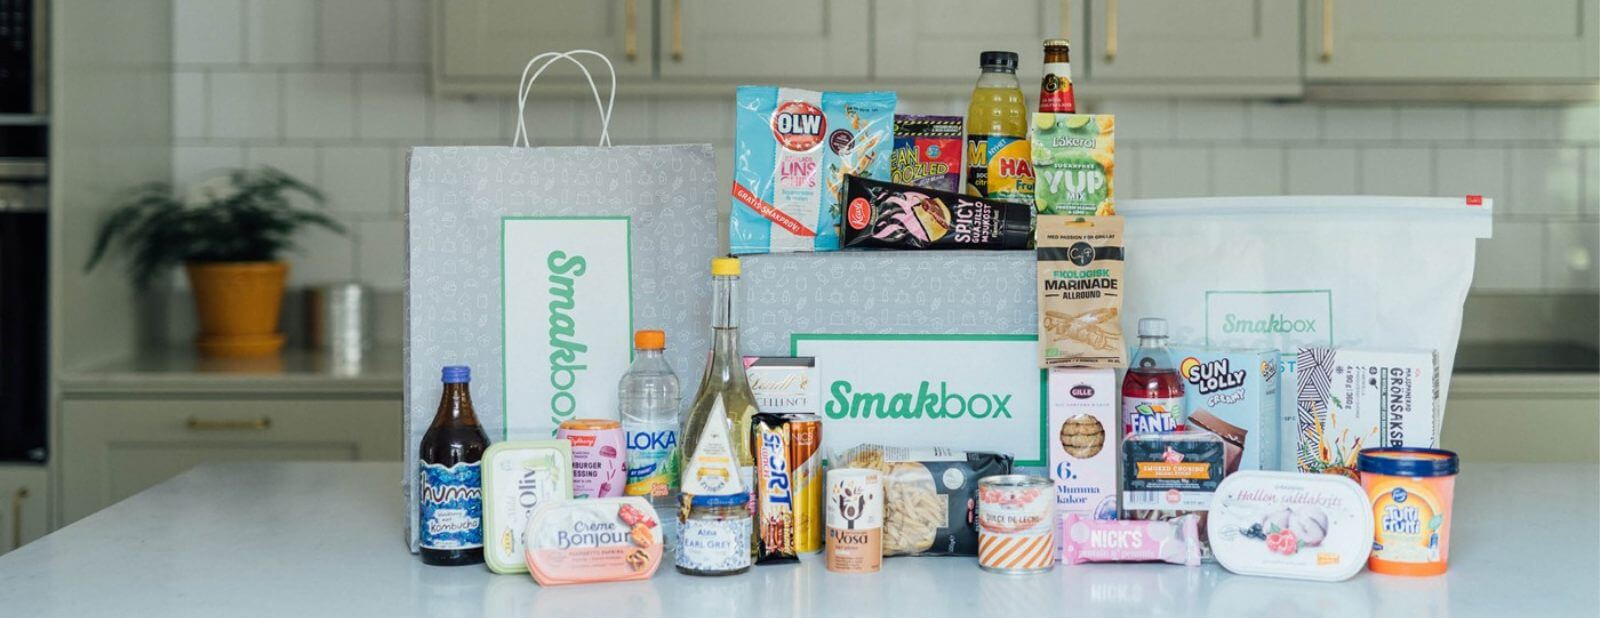 Smakbox recension av gourmandise.se